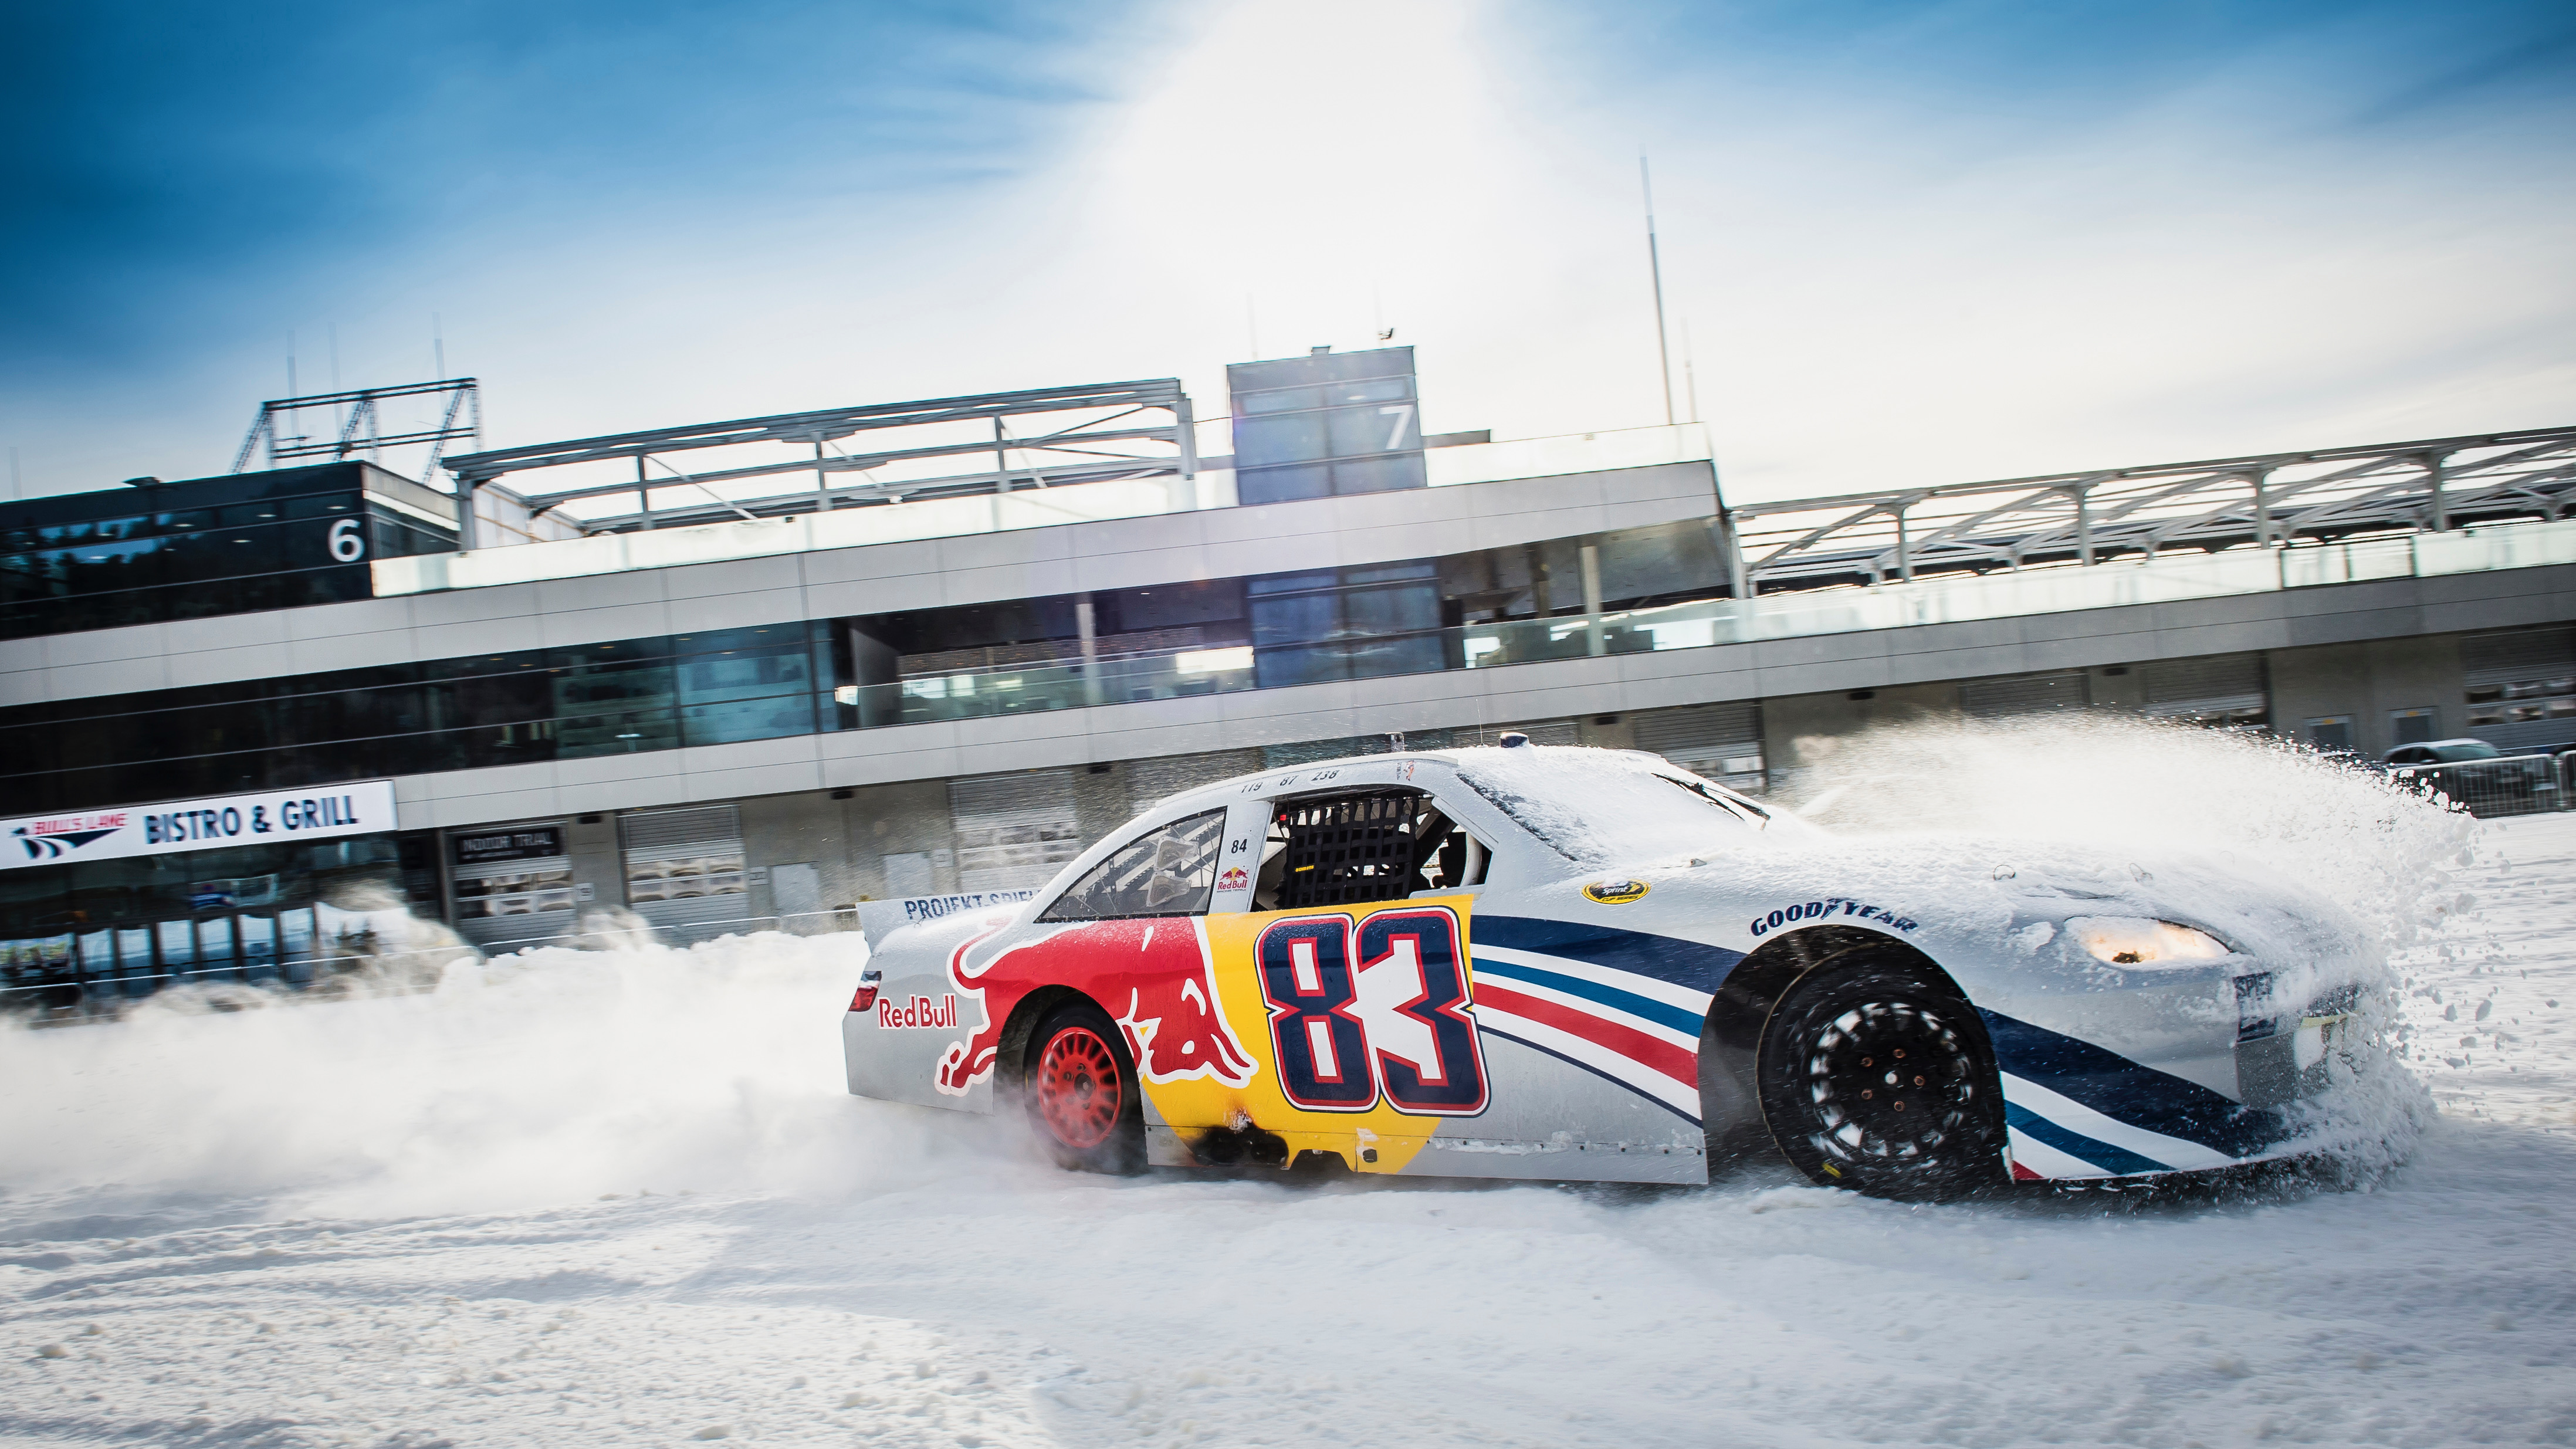 NASCAR racer will compete on studded tires in ice race